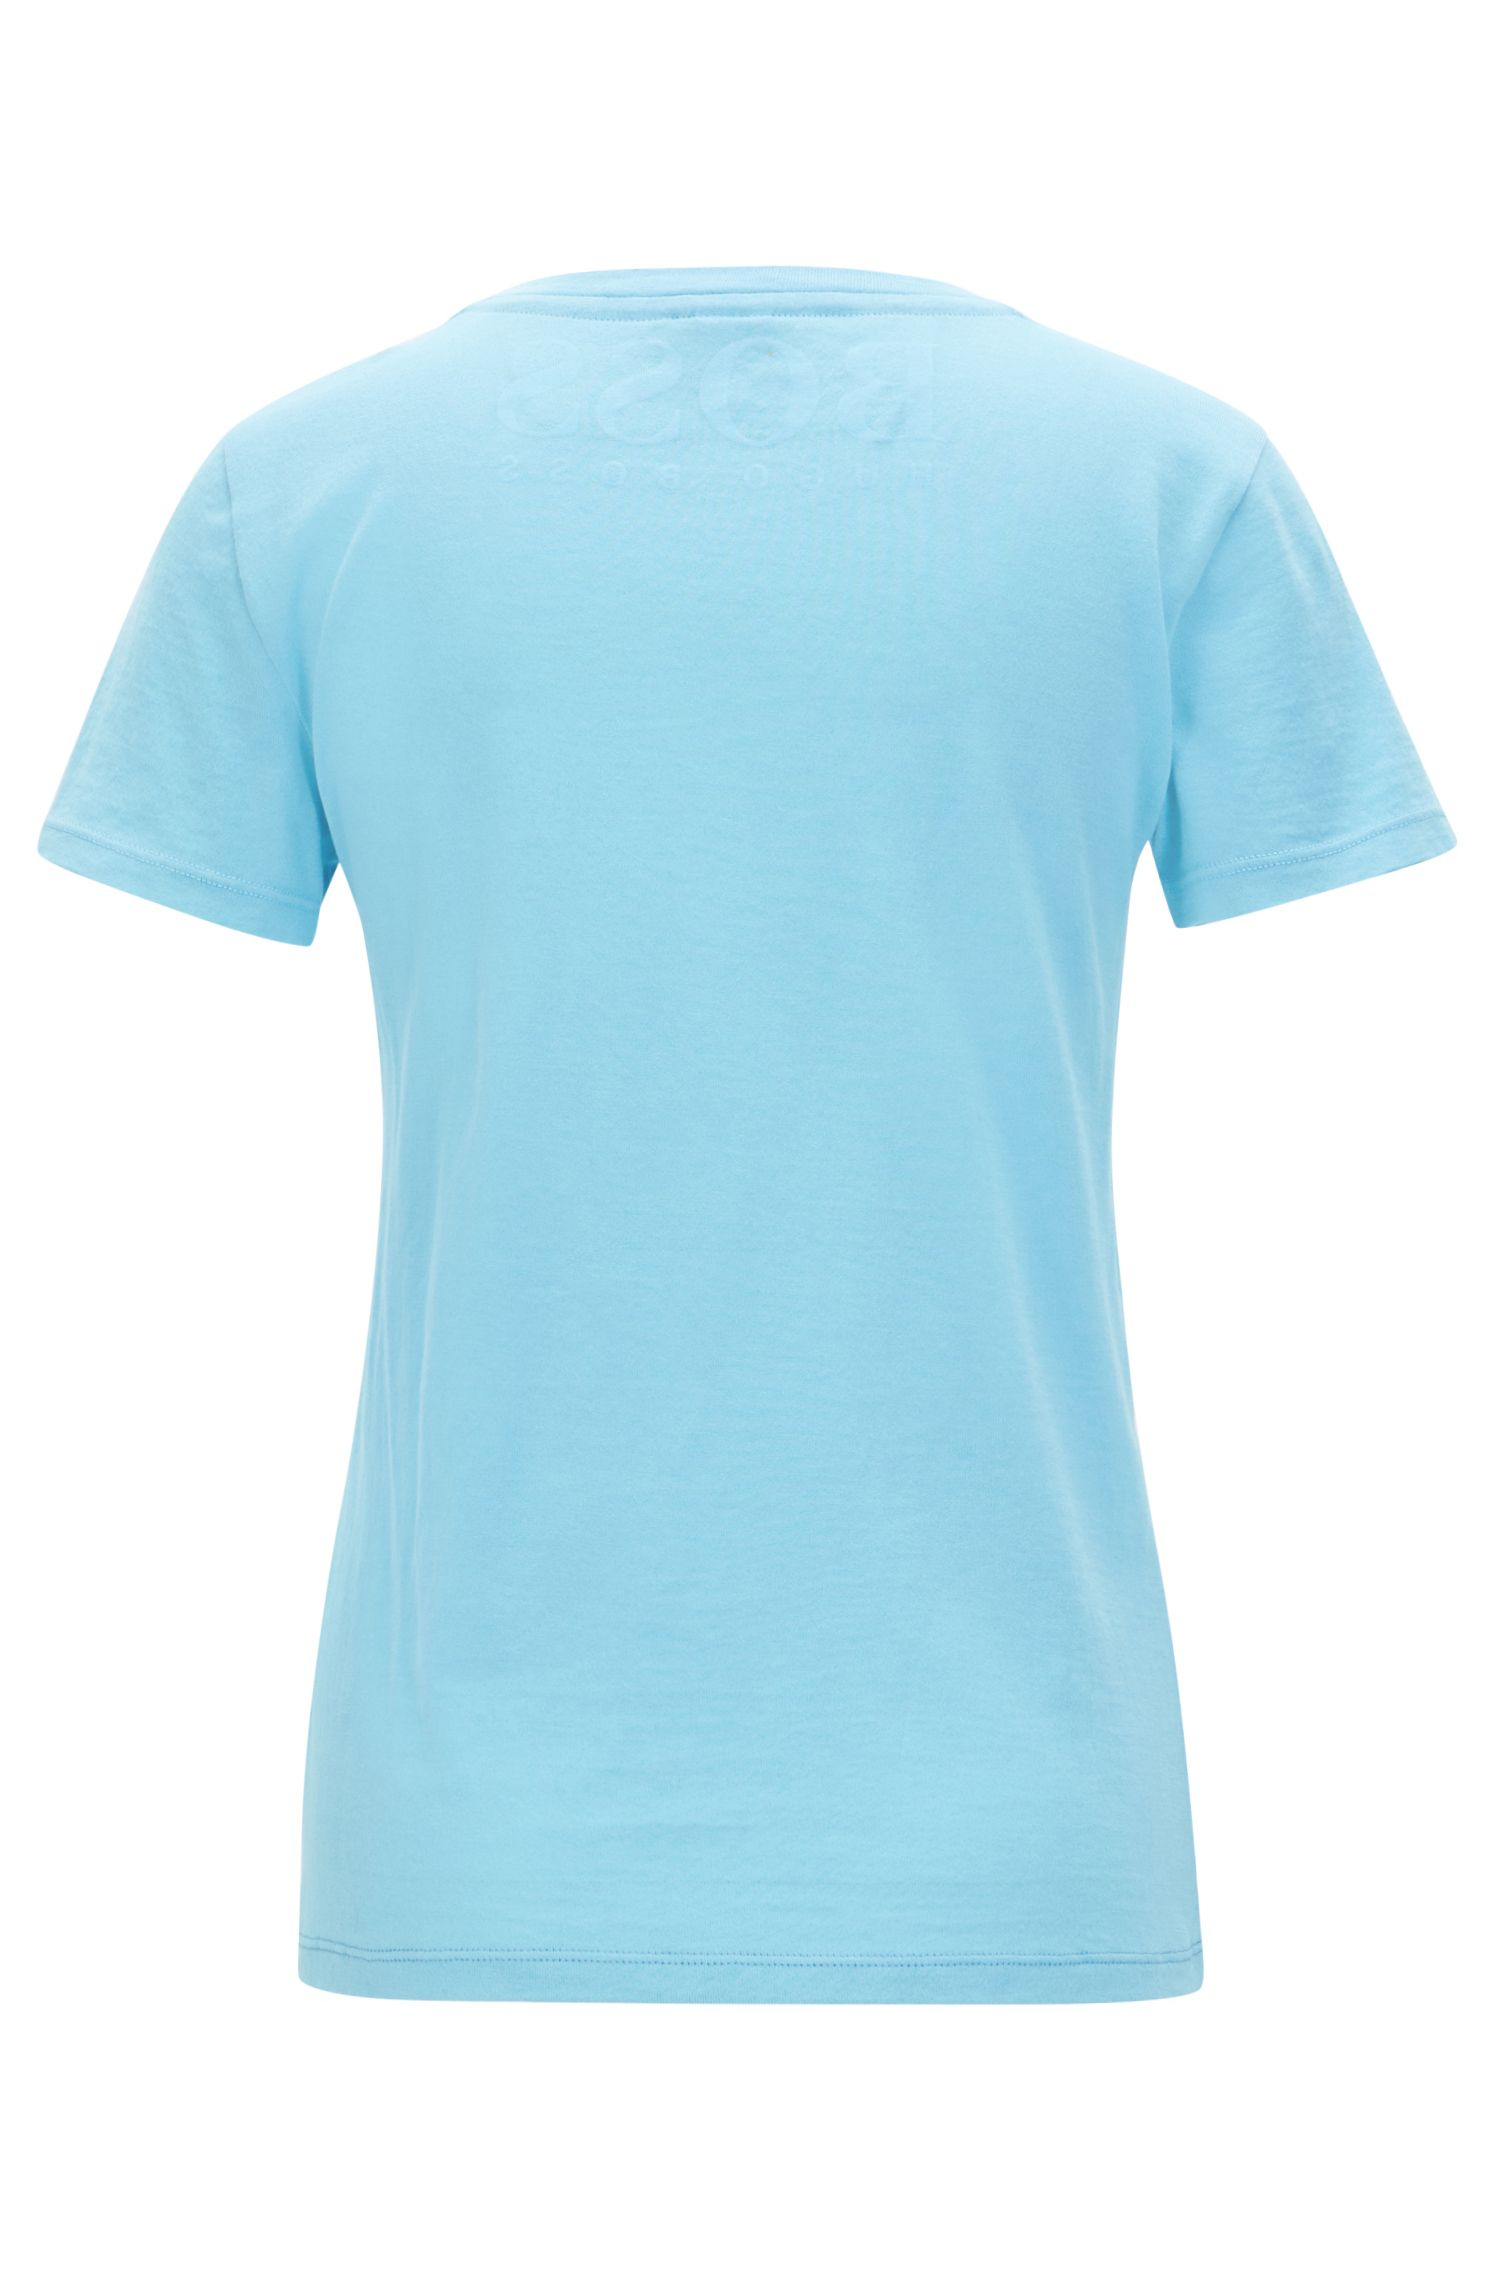 T-shirt slim fit in jersey di cotone